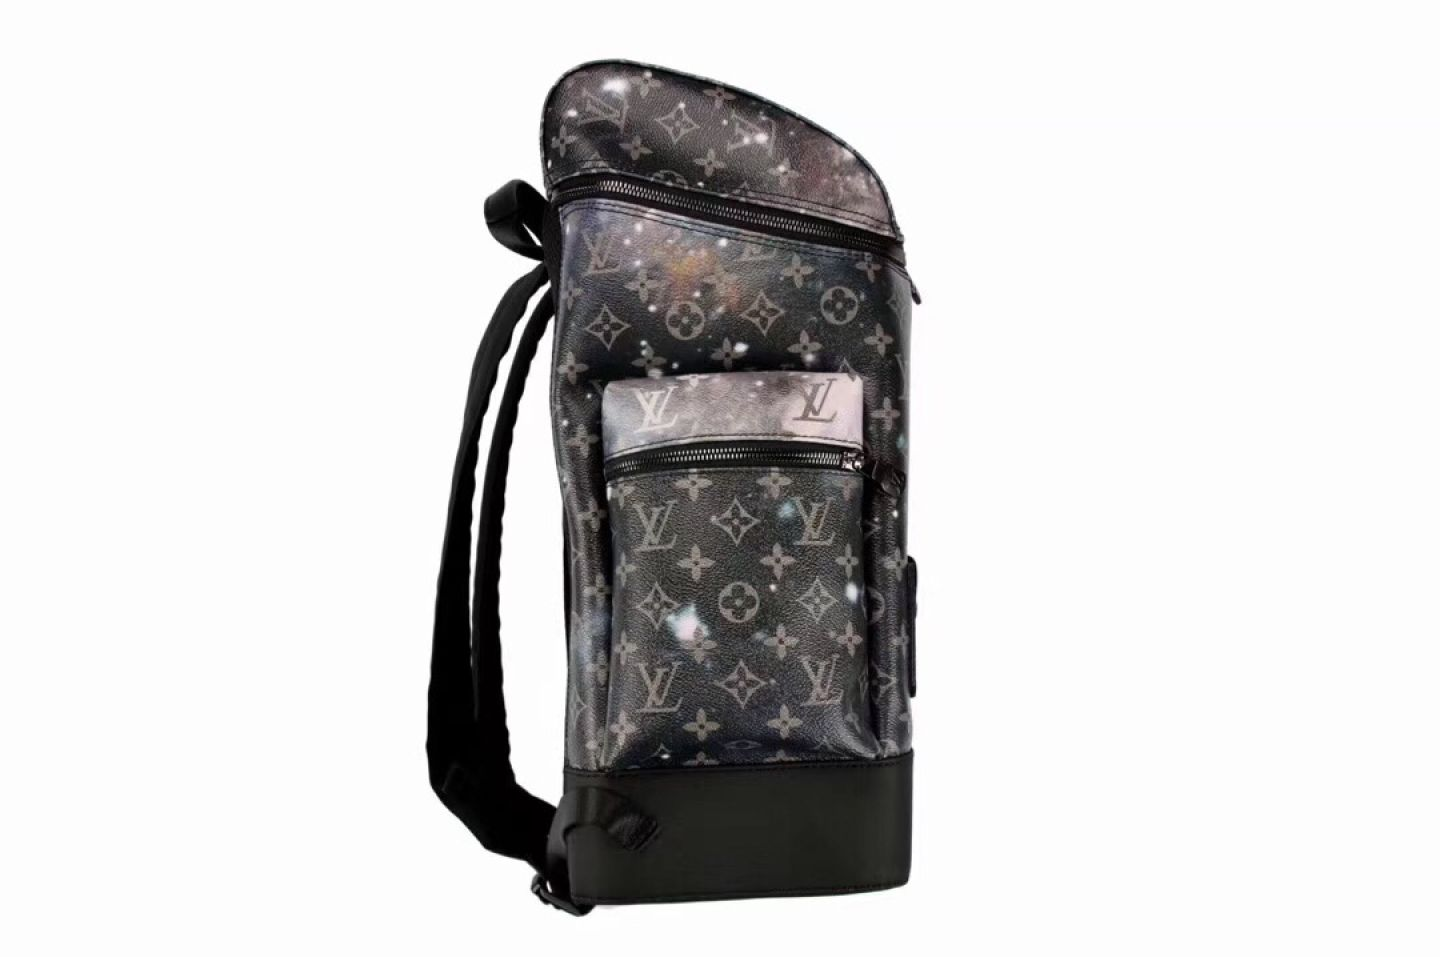 Goods Lo*is Vu*tton Alpha Backpack Monogram Galaxy Black Multicolor 2 lois_vutton_alpha_backpack_monogram_galaxy_black_multicolor__2